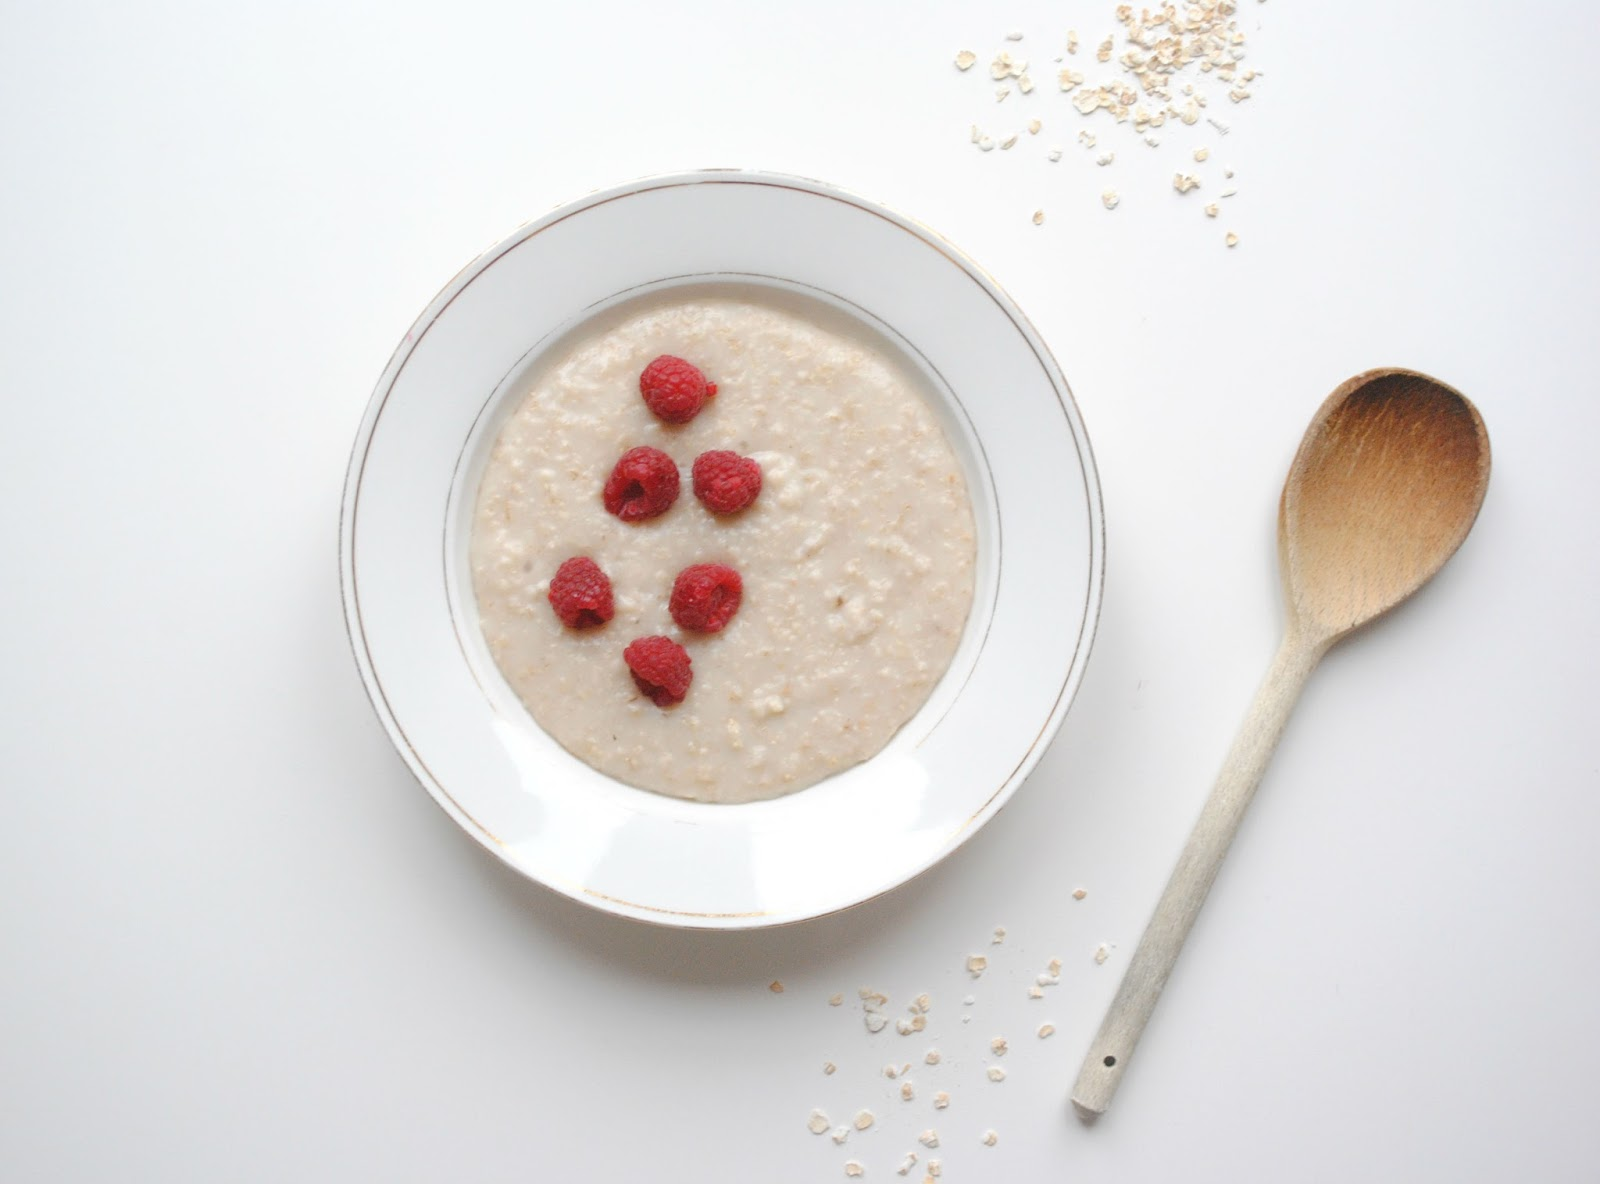 porridge fresh fruit healthy breakfast raspberries wooden spoon gold trim bowl white raspberries homeware